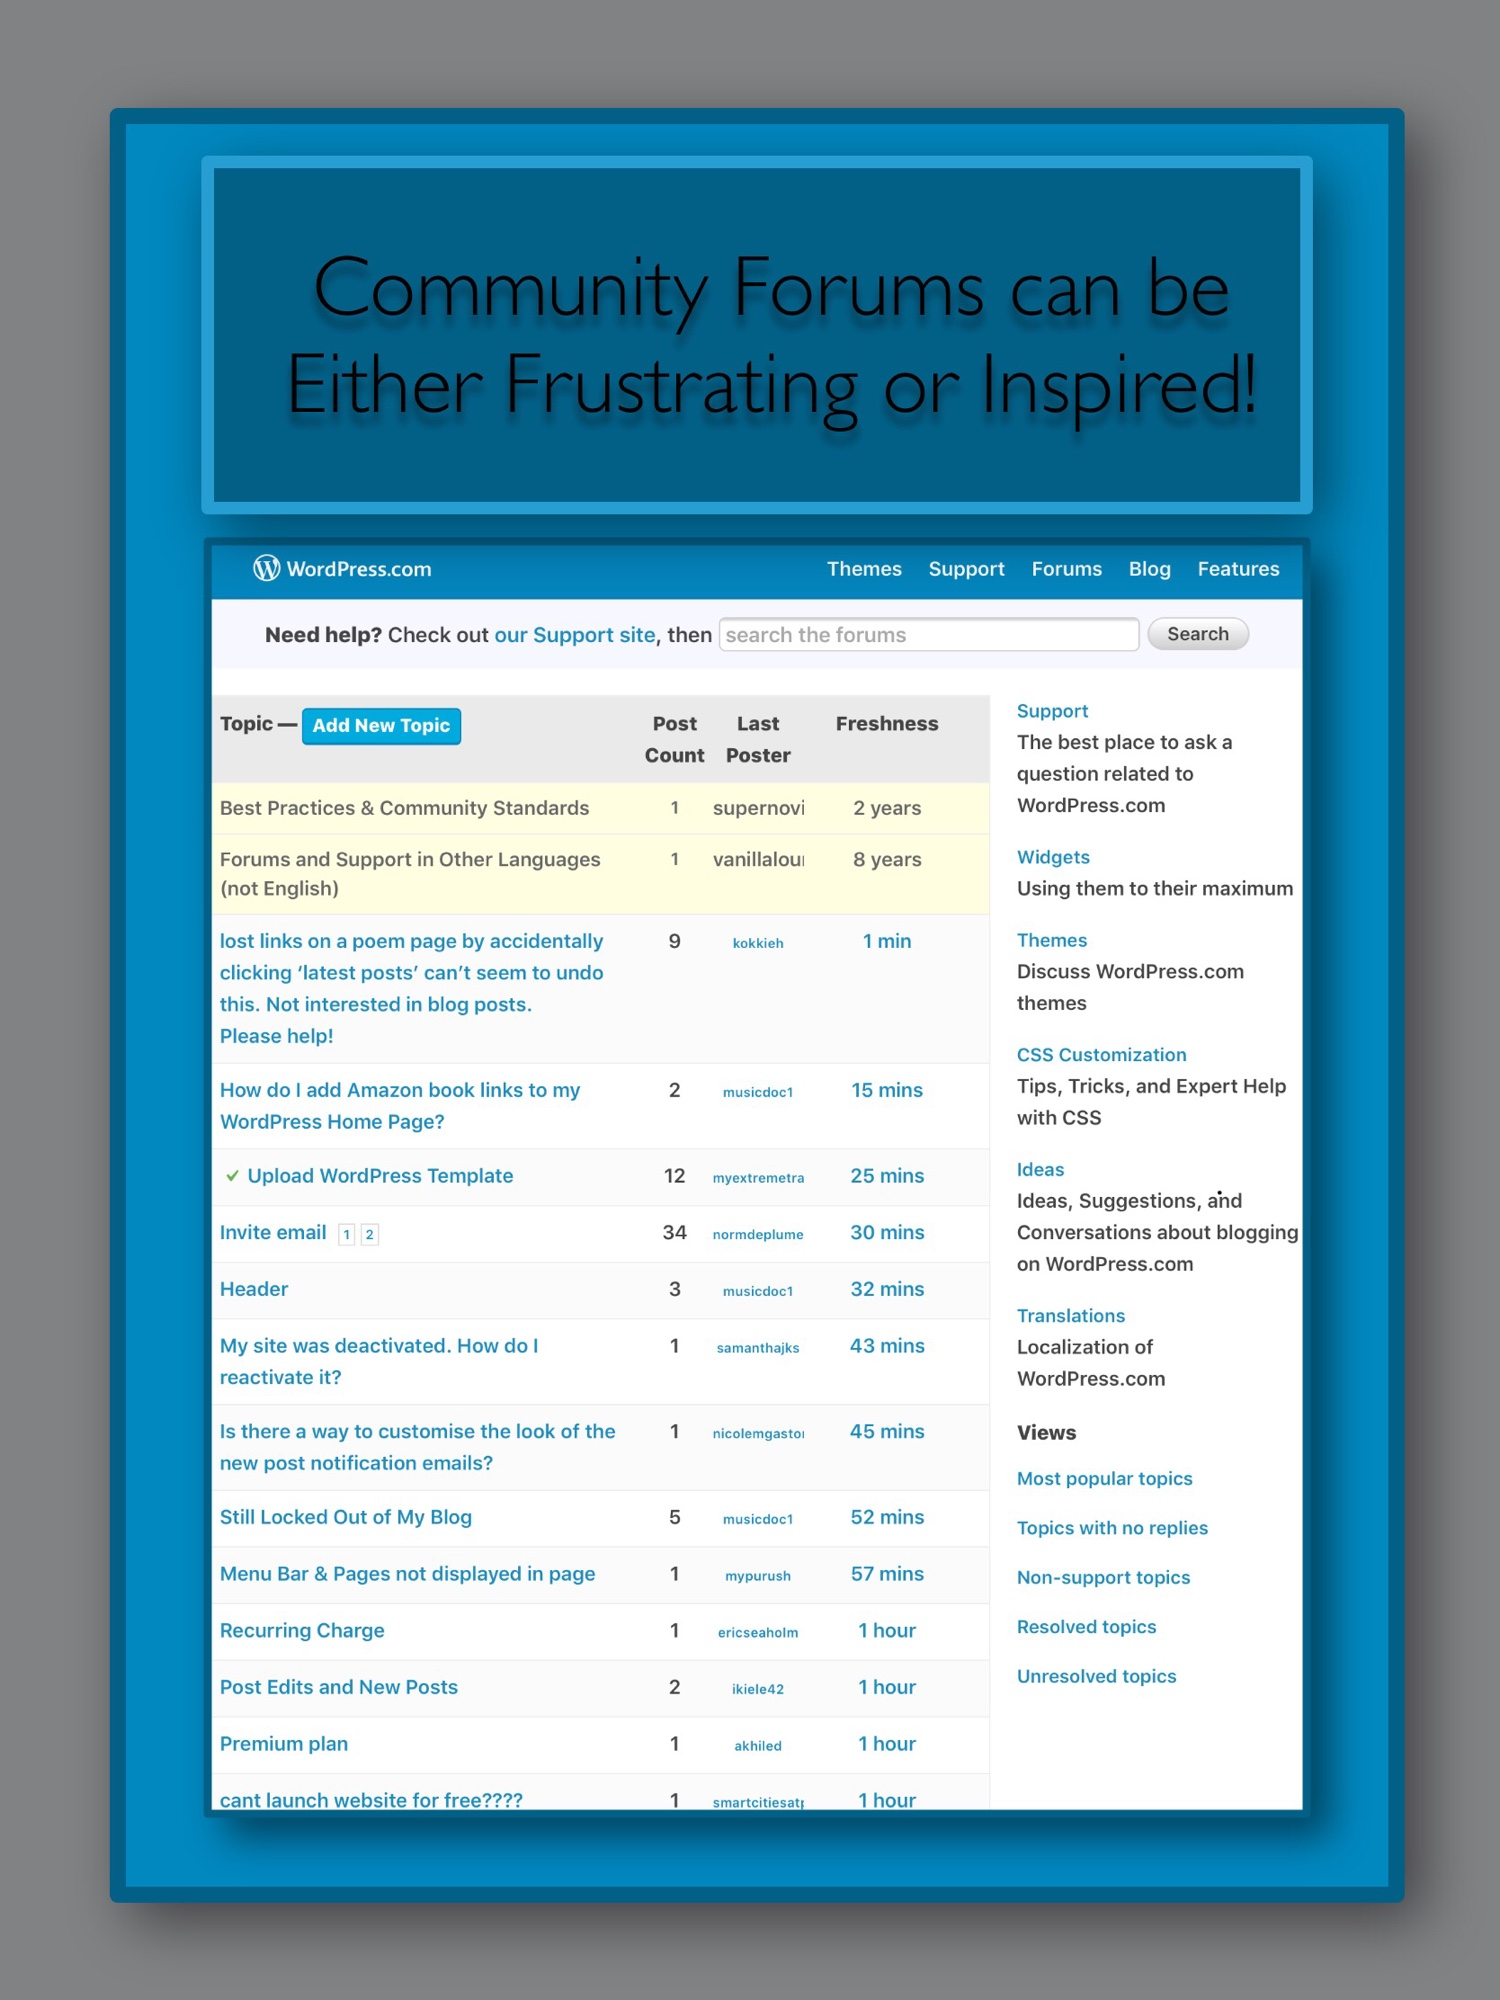 Examples of the kinds of forum questions found at the WordPress Community Forums